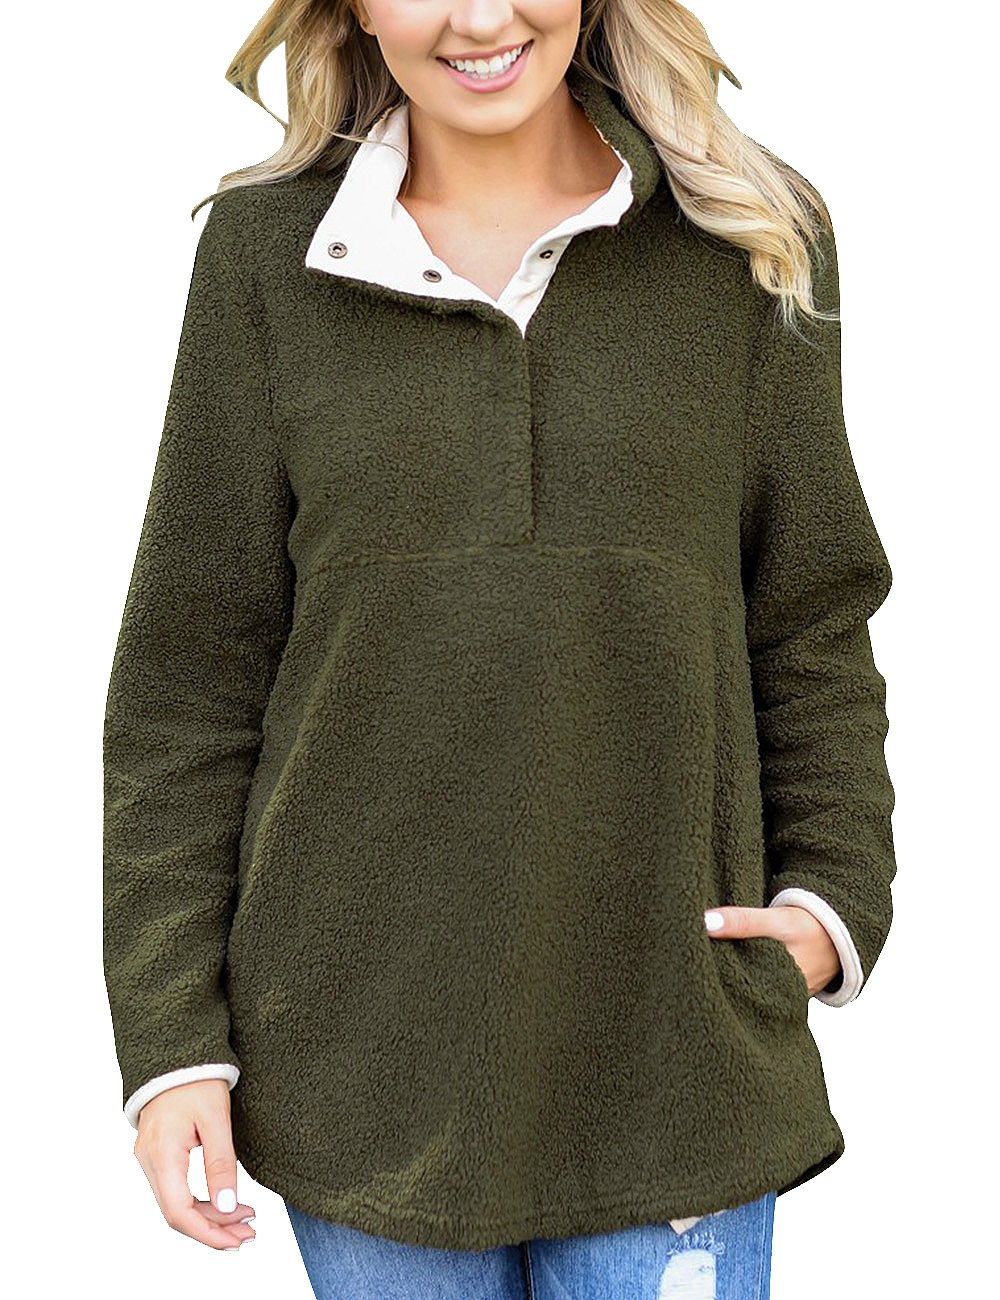 GRAPENT Women's Casual Long Sleeves Stand Collar Buttons Pockets Fleece Pullover Army Green Size L (Fit US 12 - US 14)